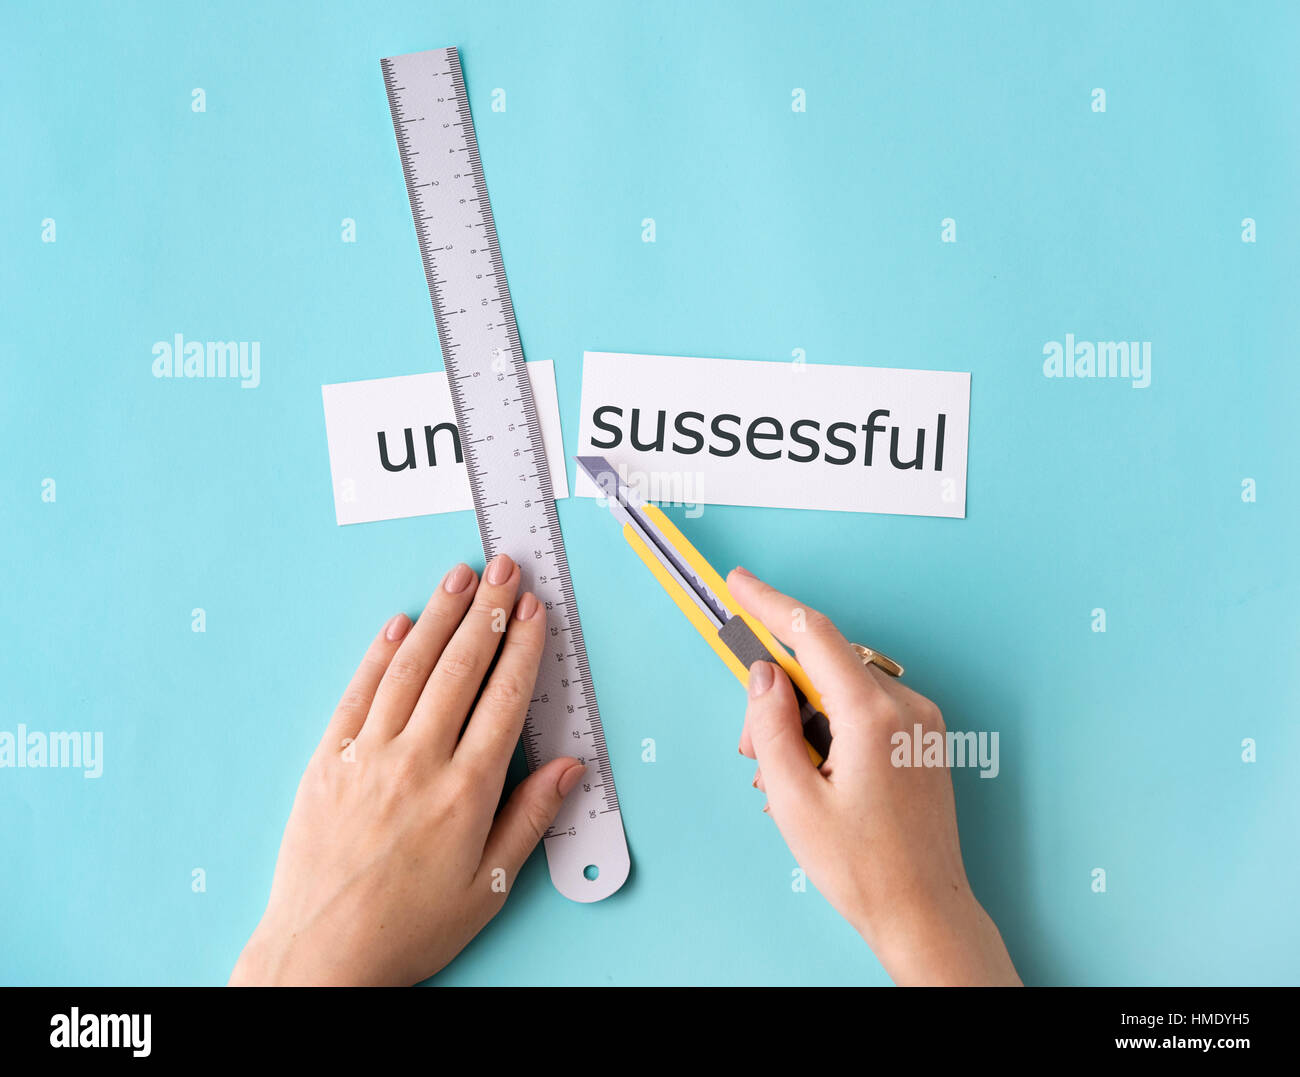 Unsuccessful Incomplete Unfinished Hands Cut Word Split Concept - Stock Image